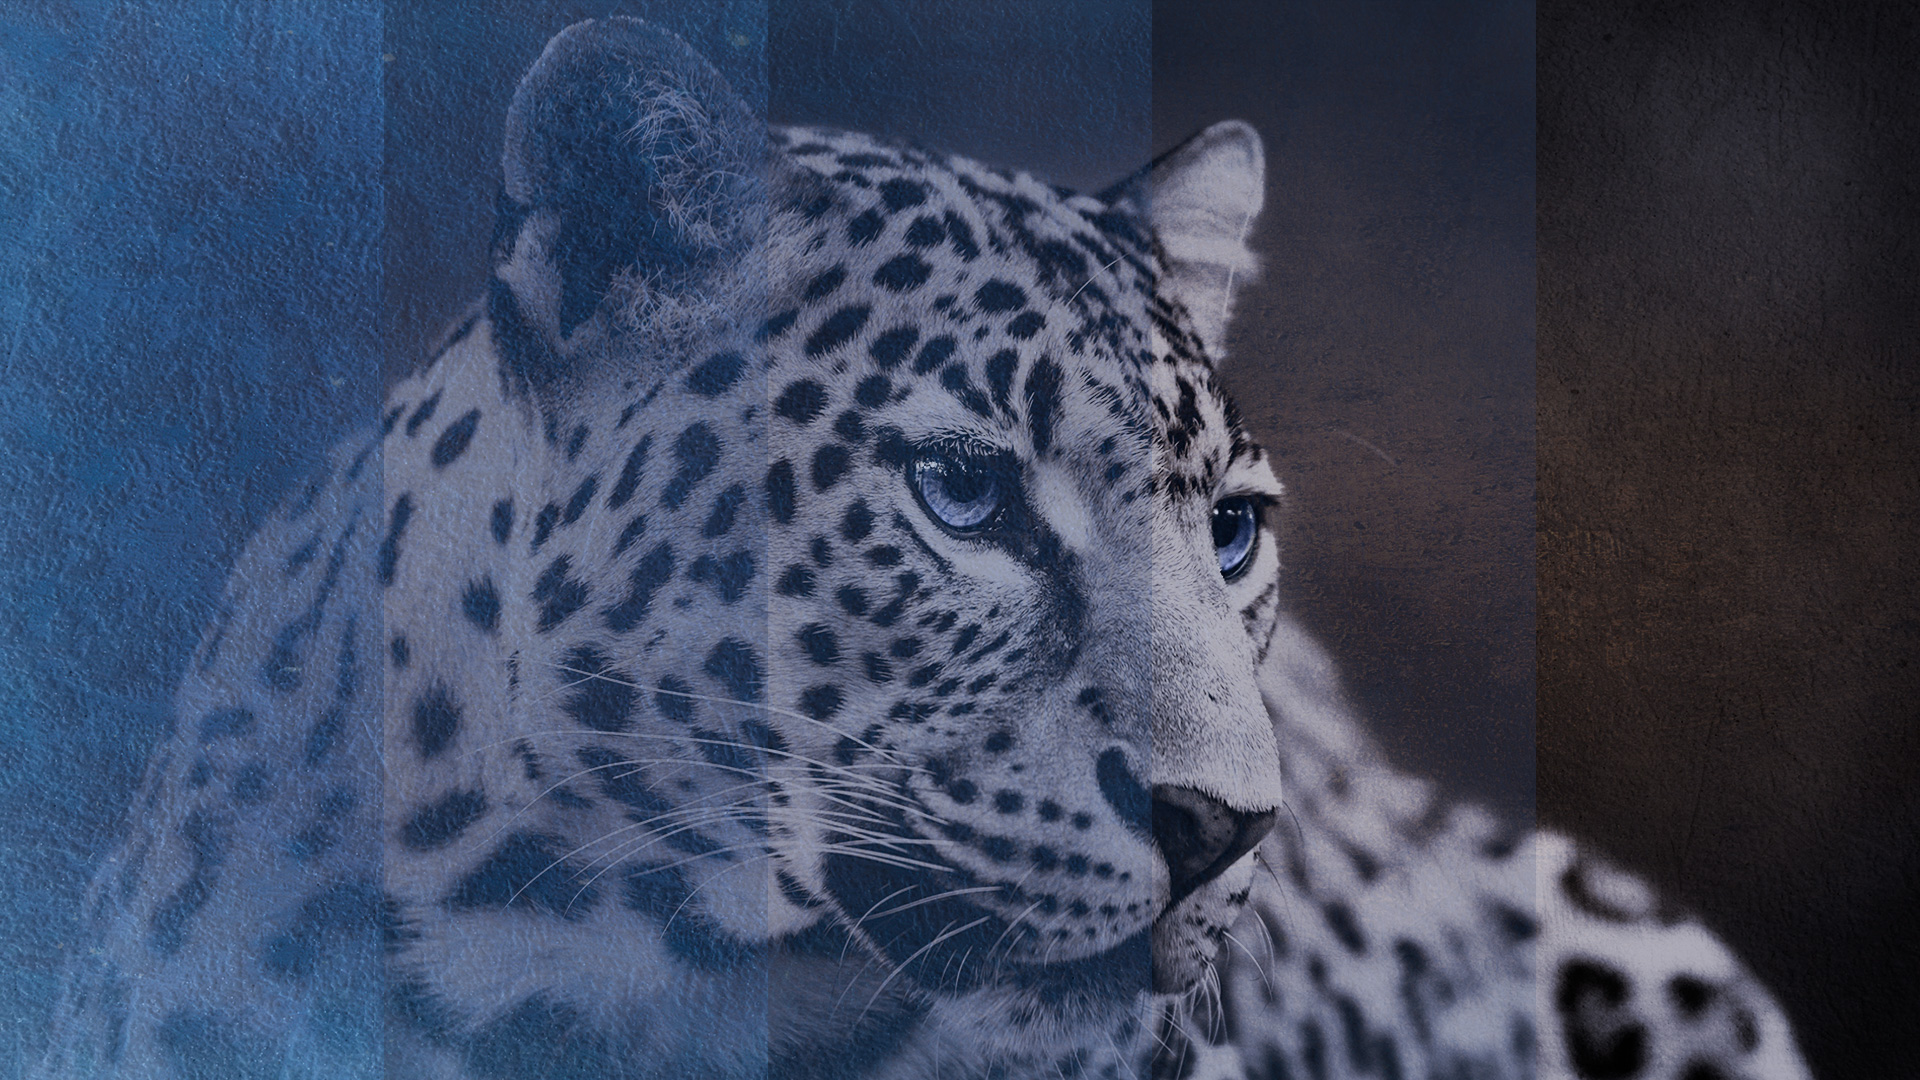 FEATURED-jhahn-leopard-part-2